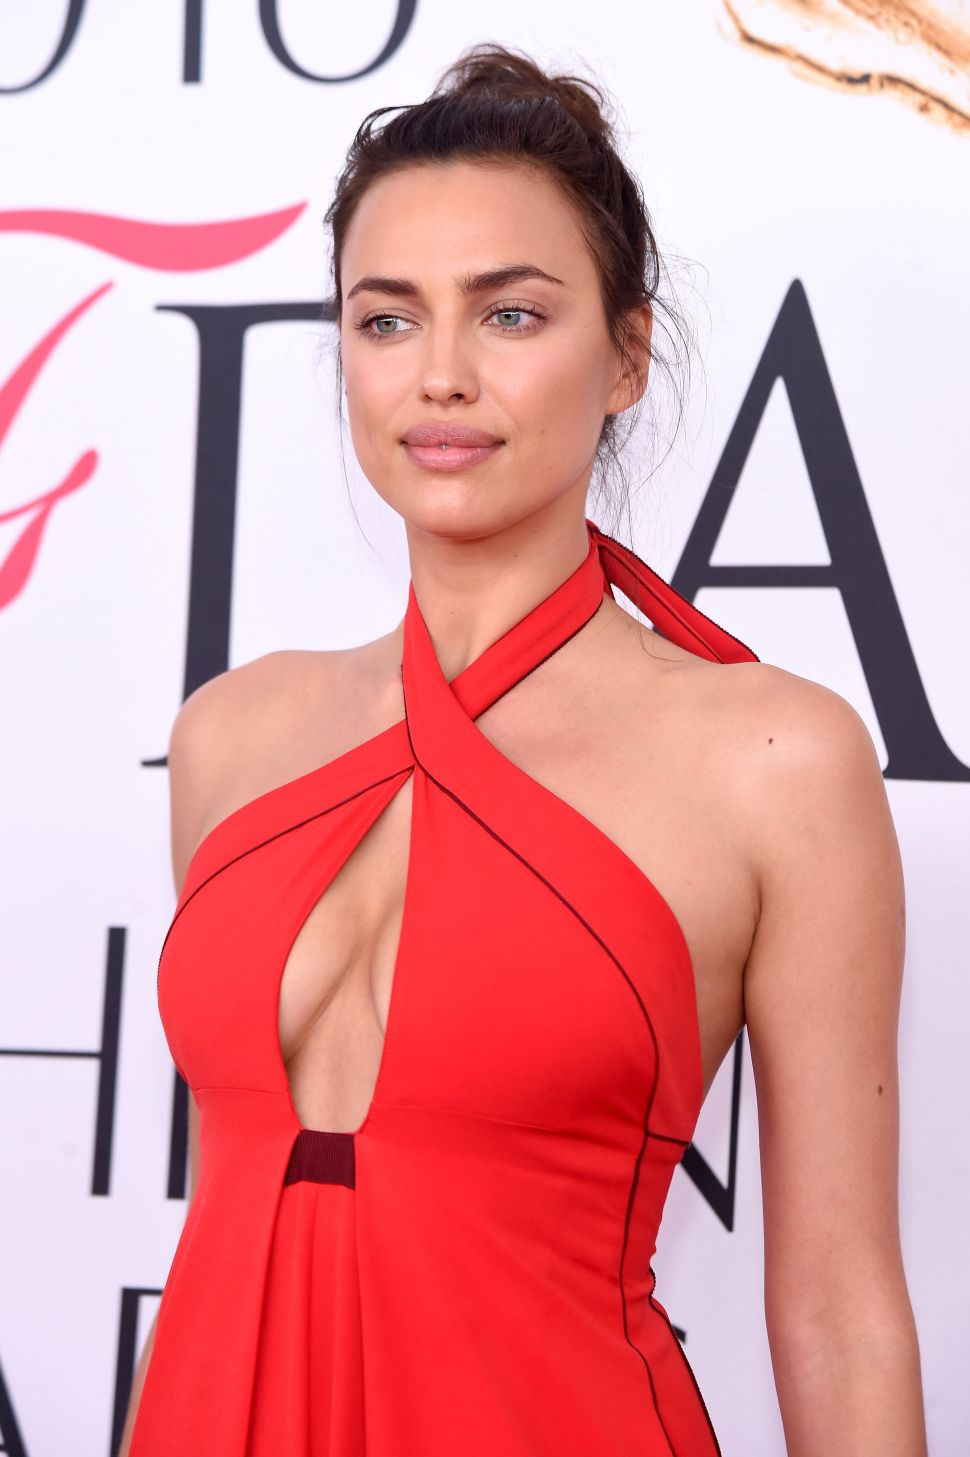 Irina Shayk's Condo Could Be Yours, Sans Bradley Cooper